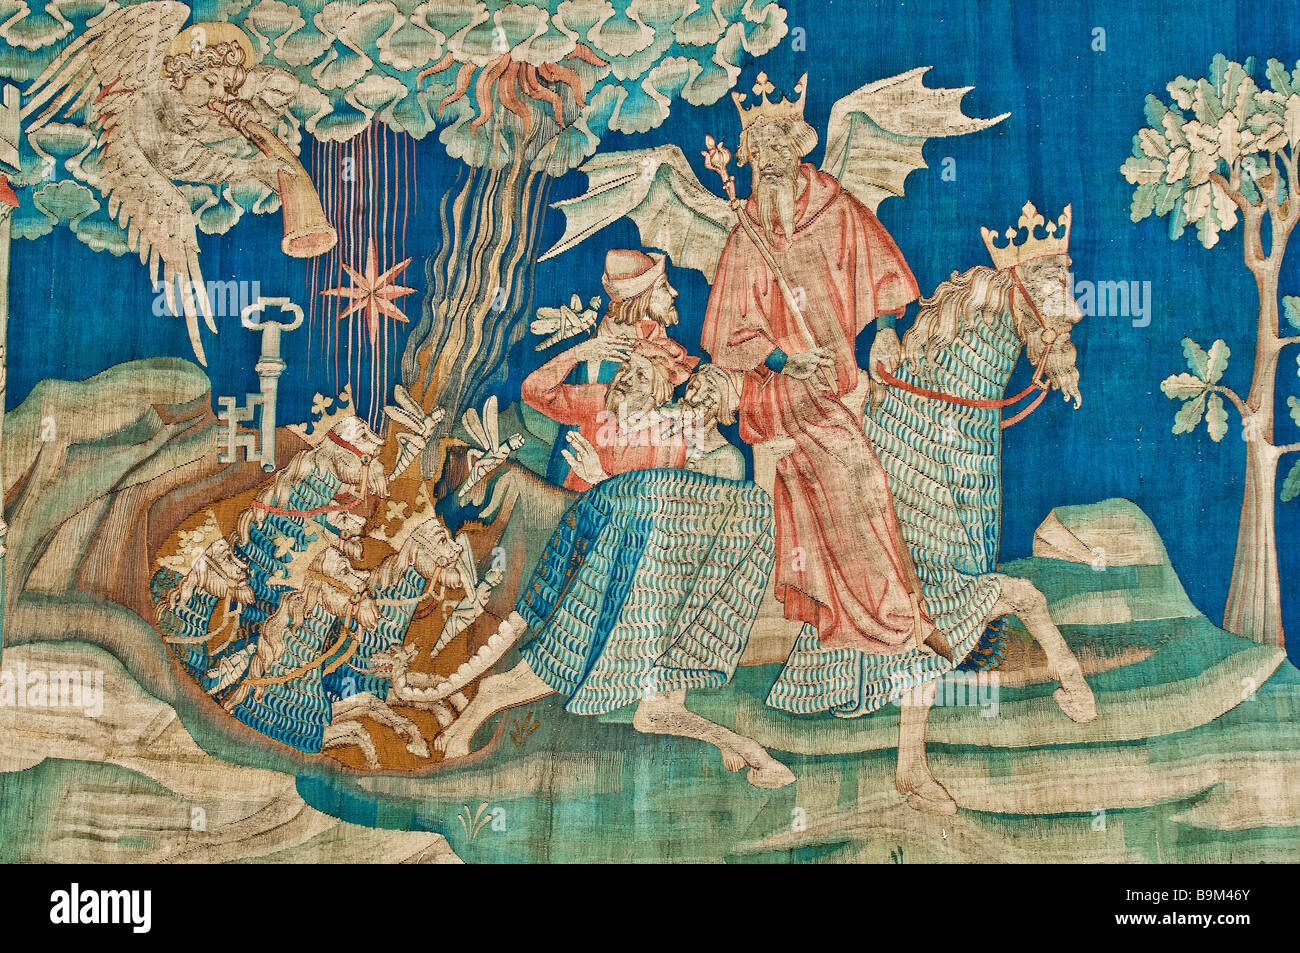 France, Maine et Loire, Angers, castle, the Apocalypse tapestry, for publishing authorization contact Gerard Cieslik - Stock Image